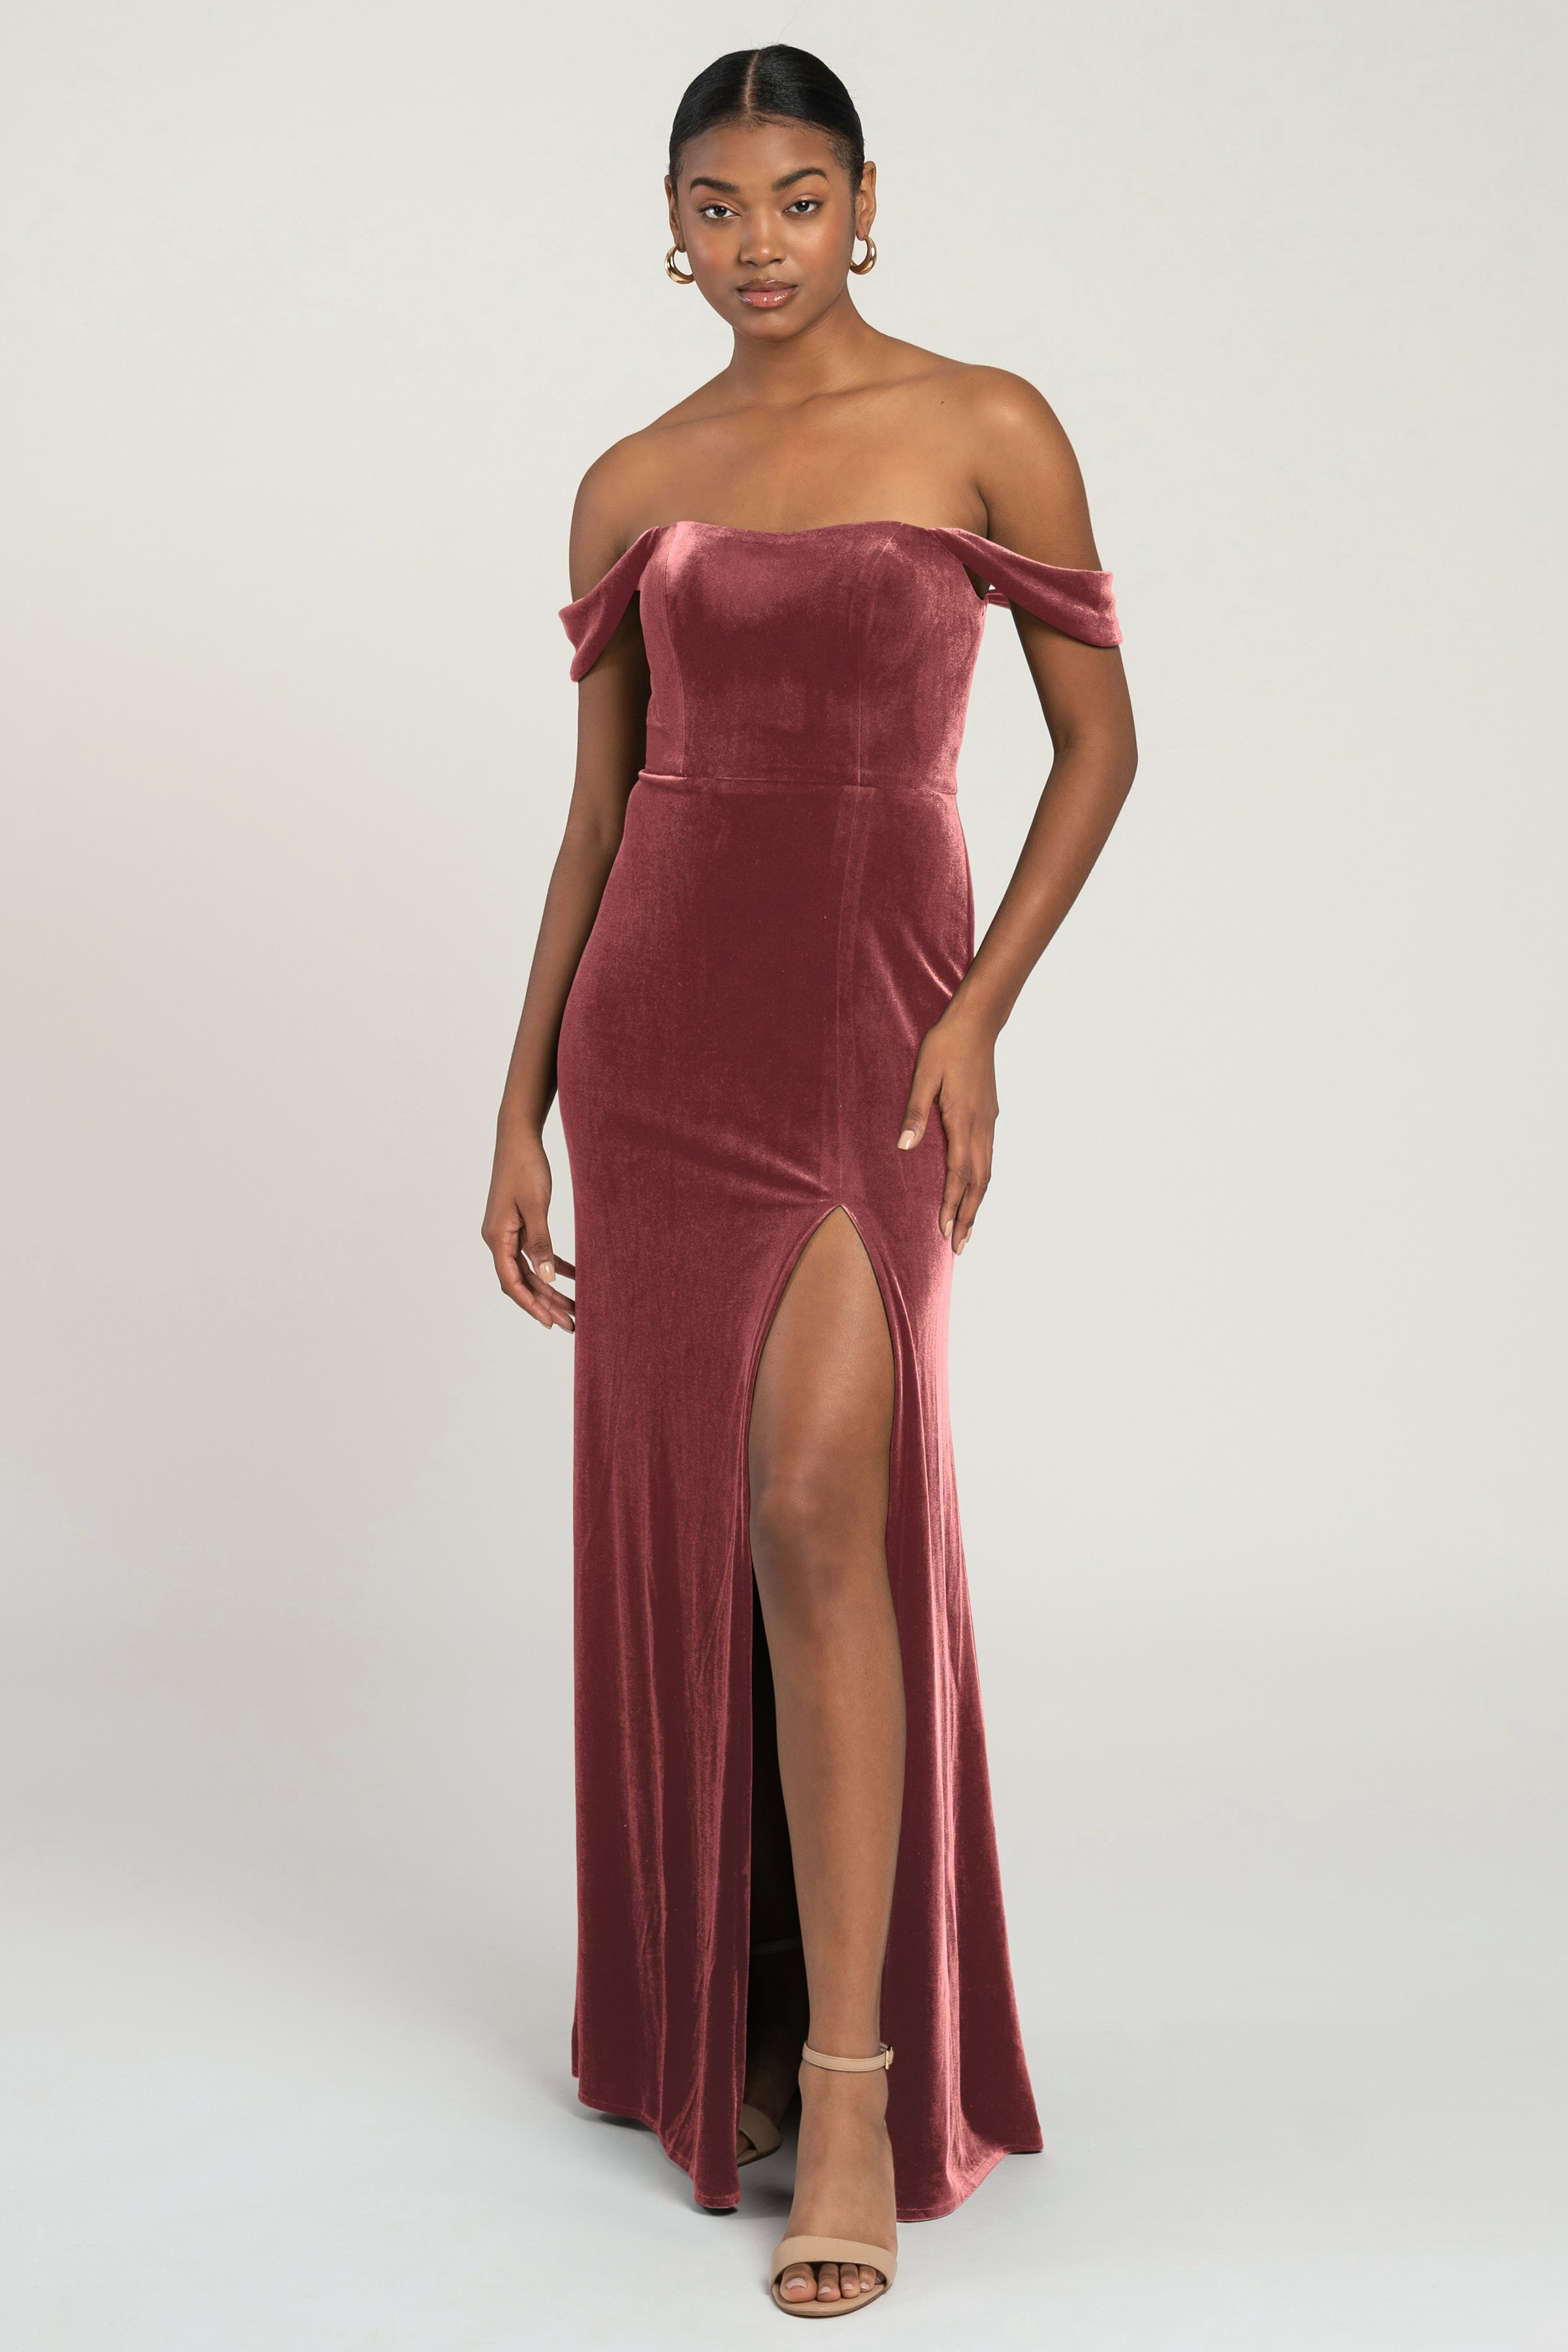 The Issa velvet off the shoulder bridesmaid dress is an elegant addition to any bridal party. The wide scoop neck leads into a flattering draped sleeve that highlights your shoulders beautifully.